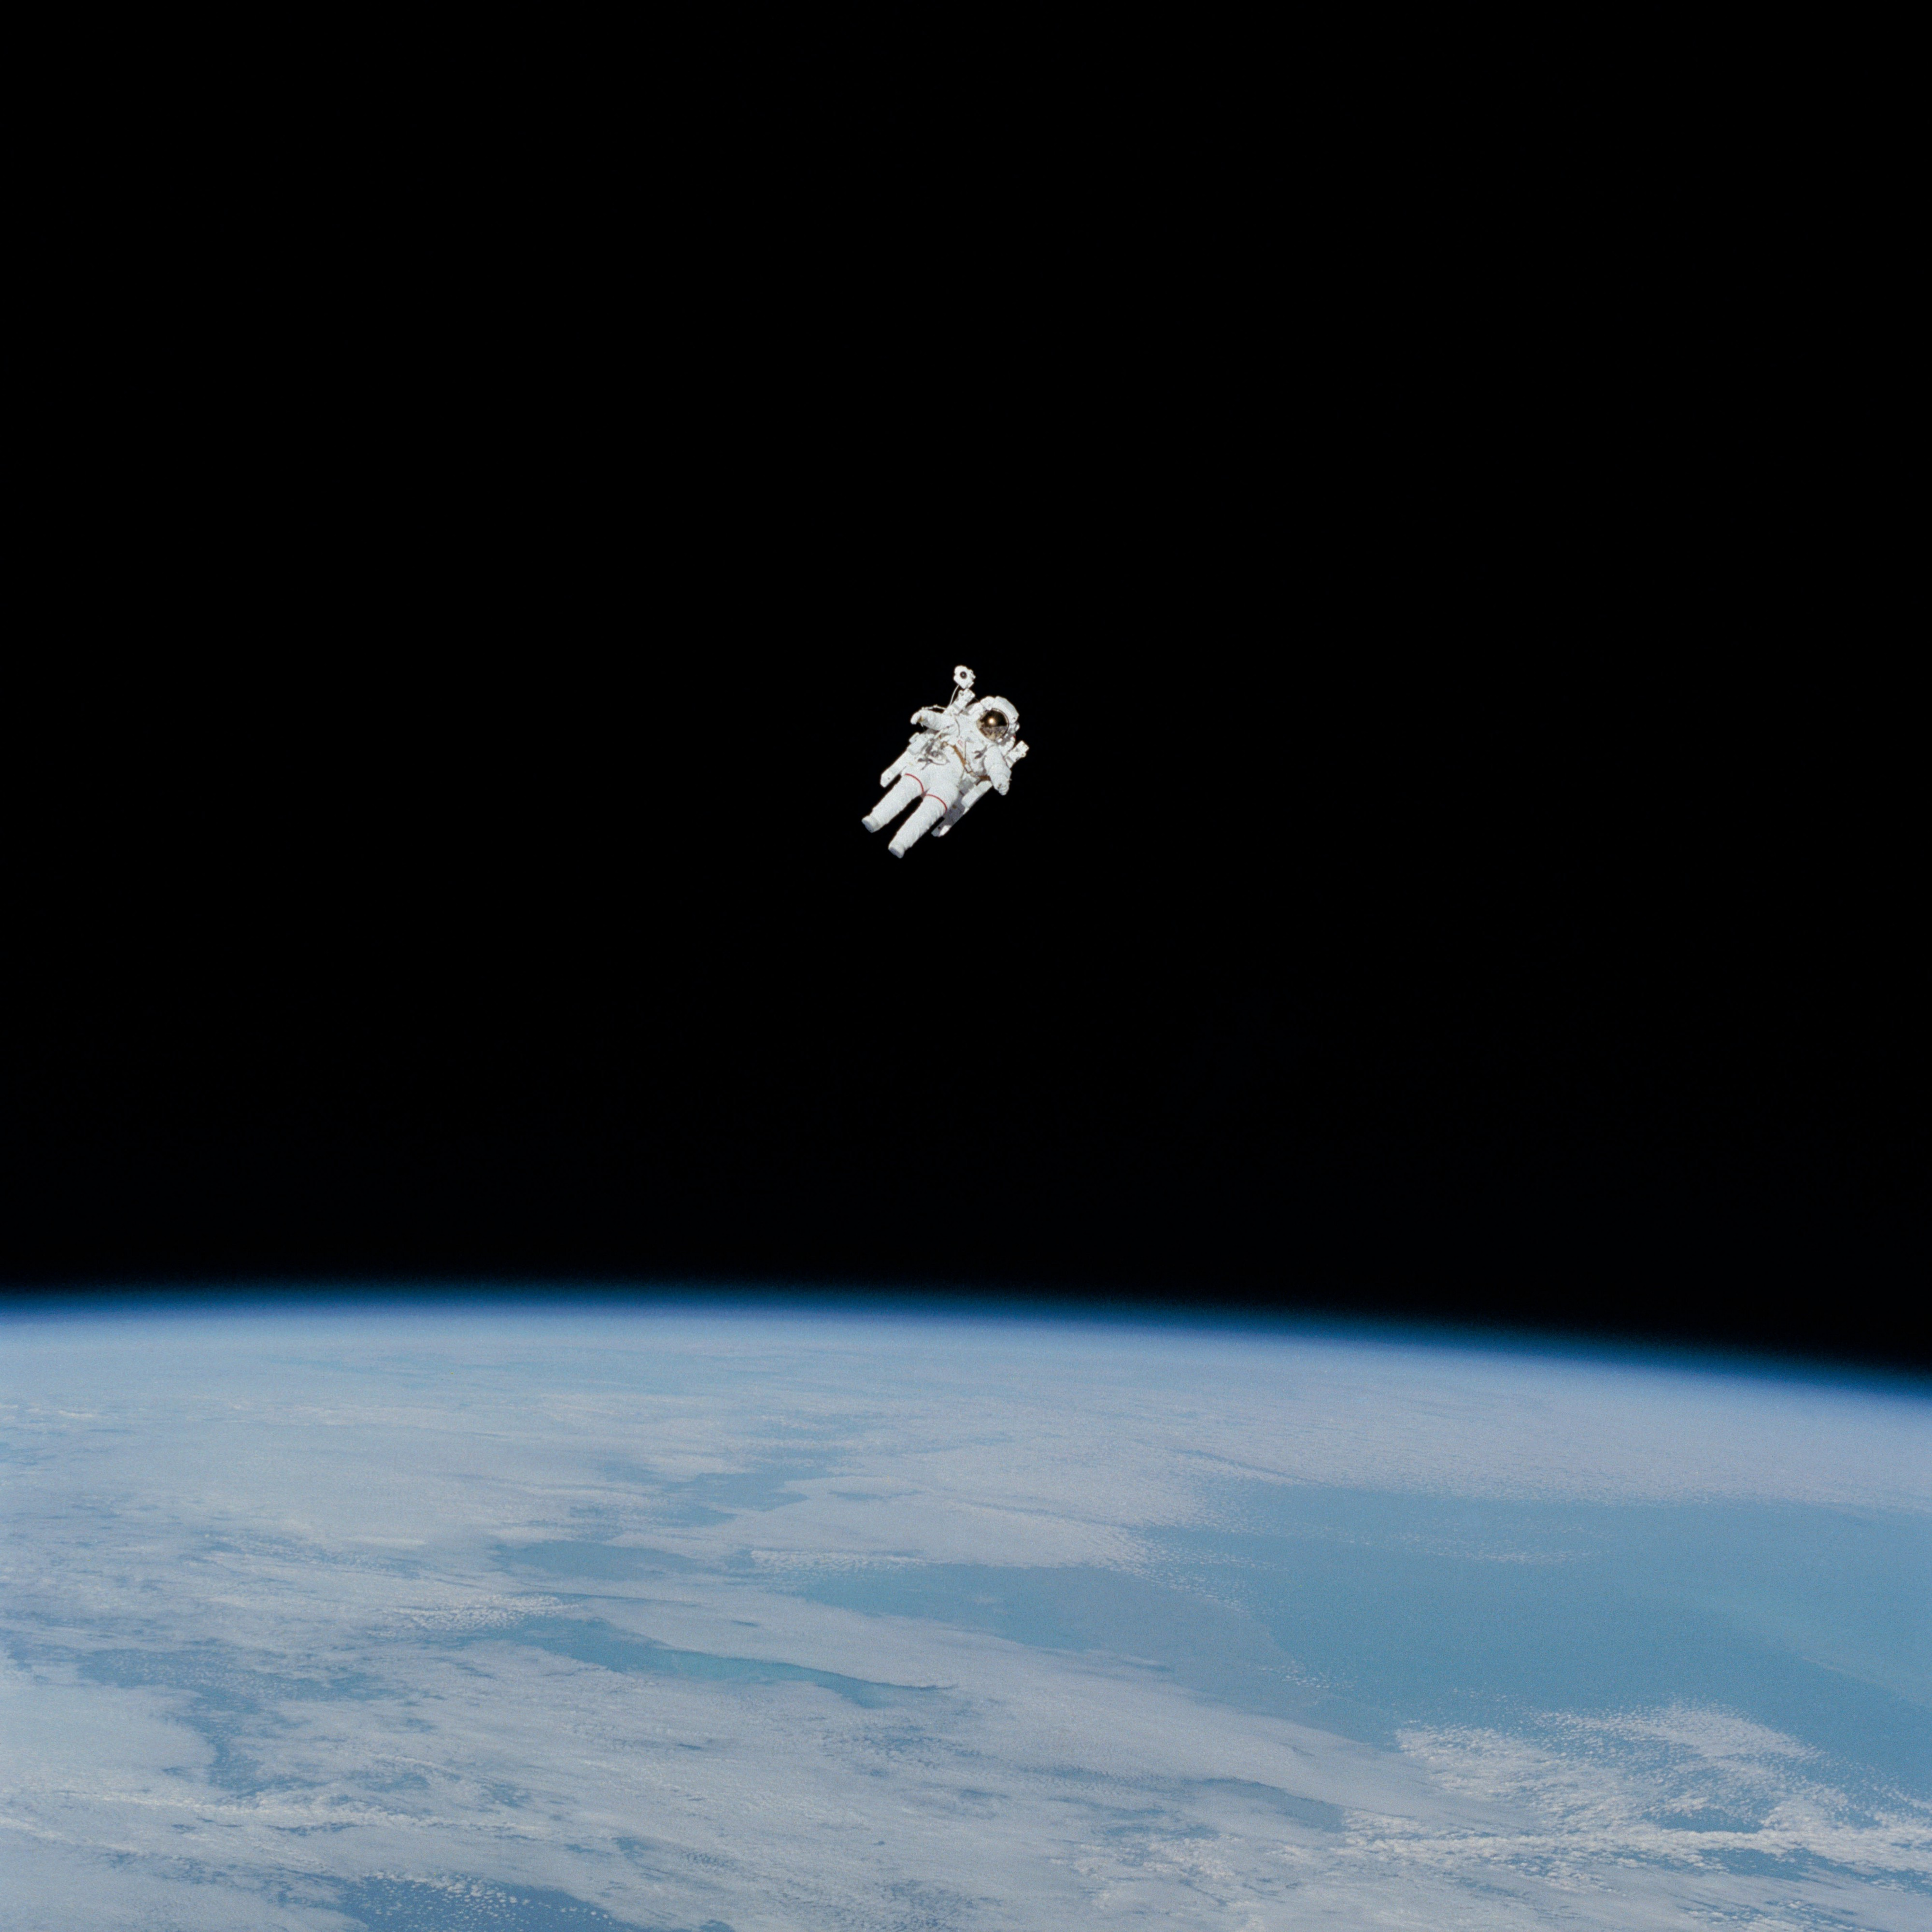 Astronaut floating in space, a minuscule white figure in the vastness of the cosmos